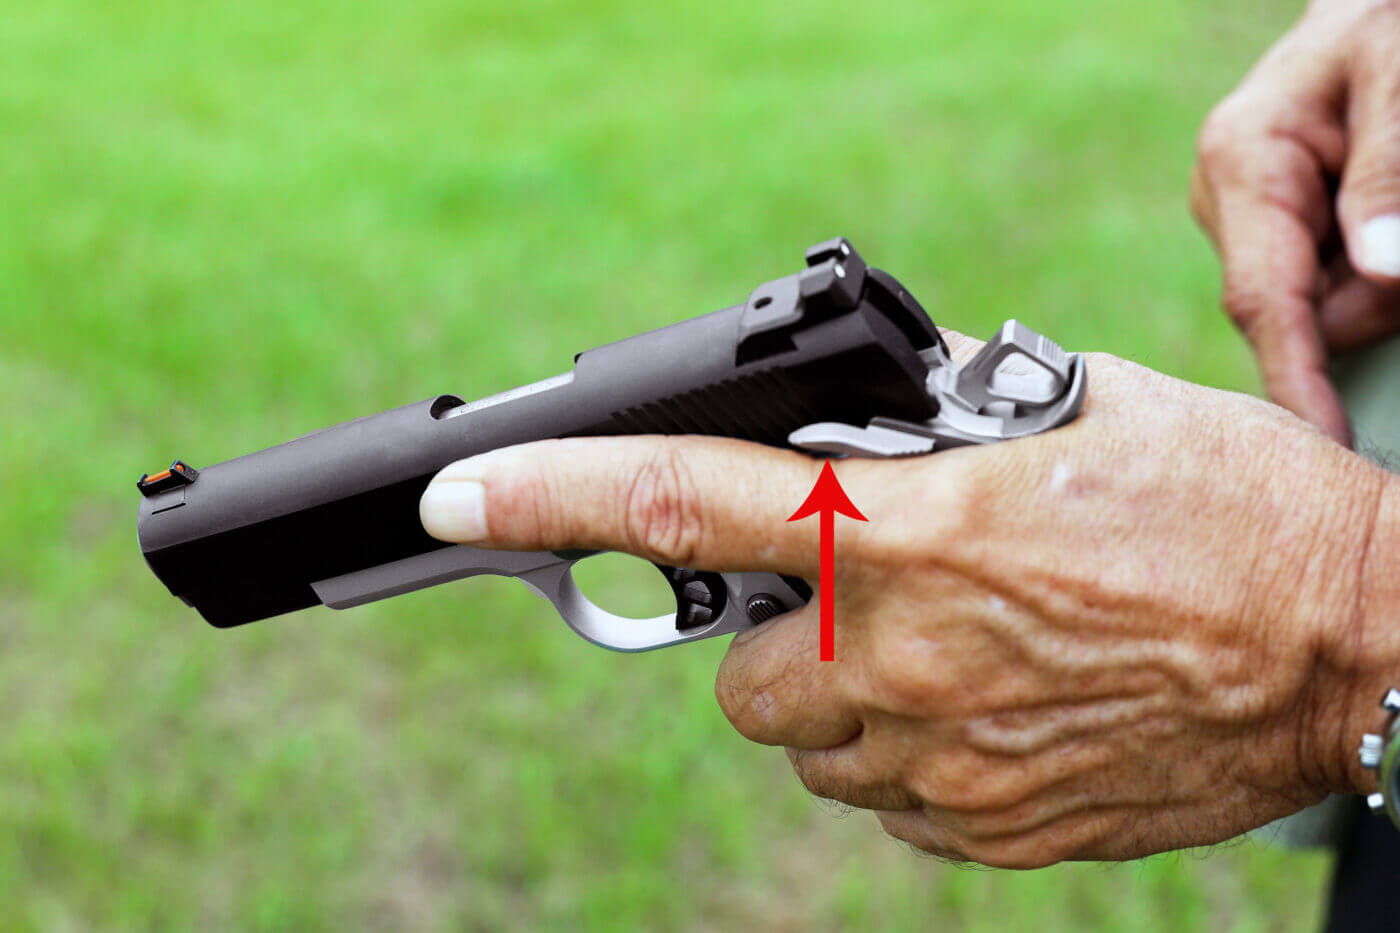 Ayoob shows how to engage the 1911 thumb safety with one hand